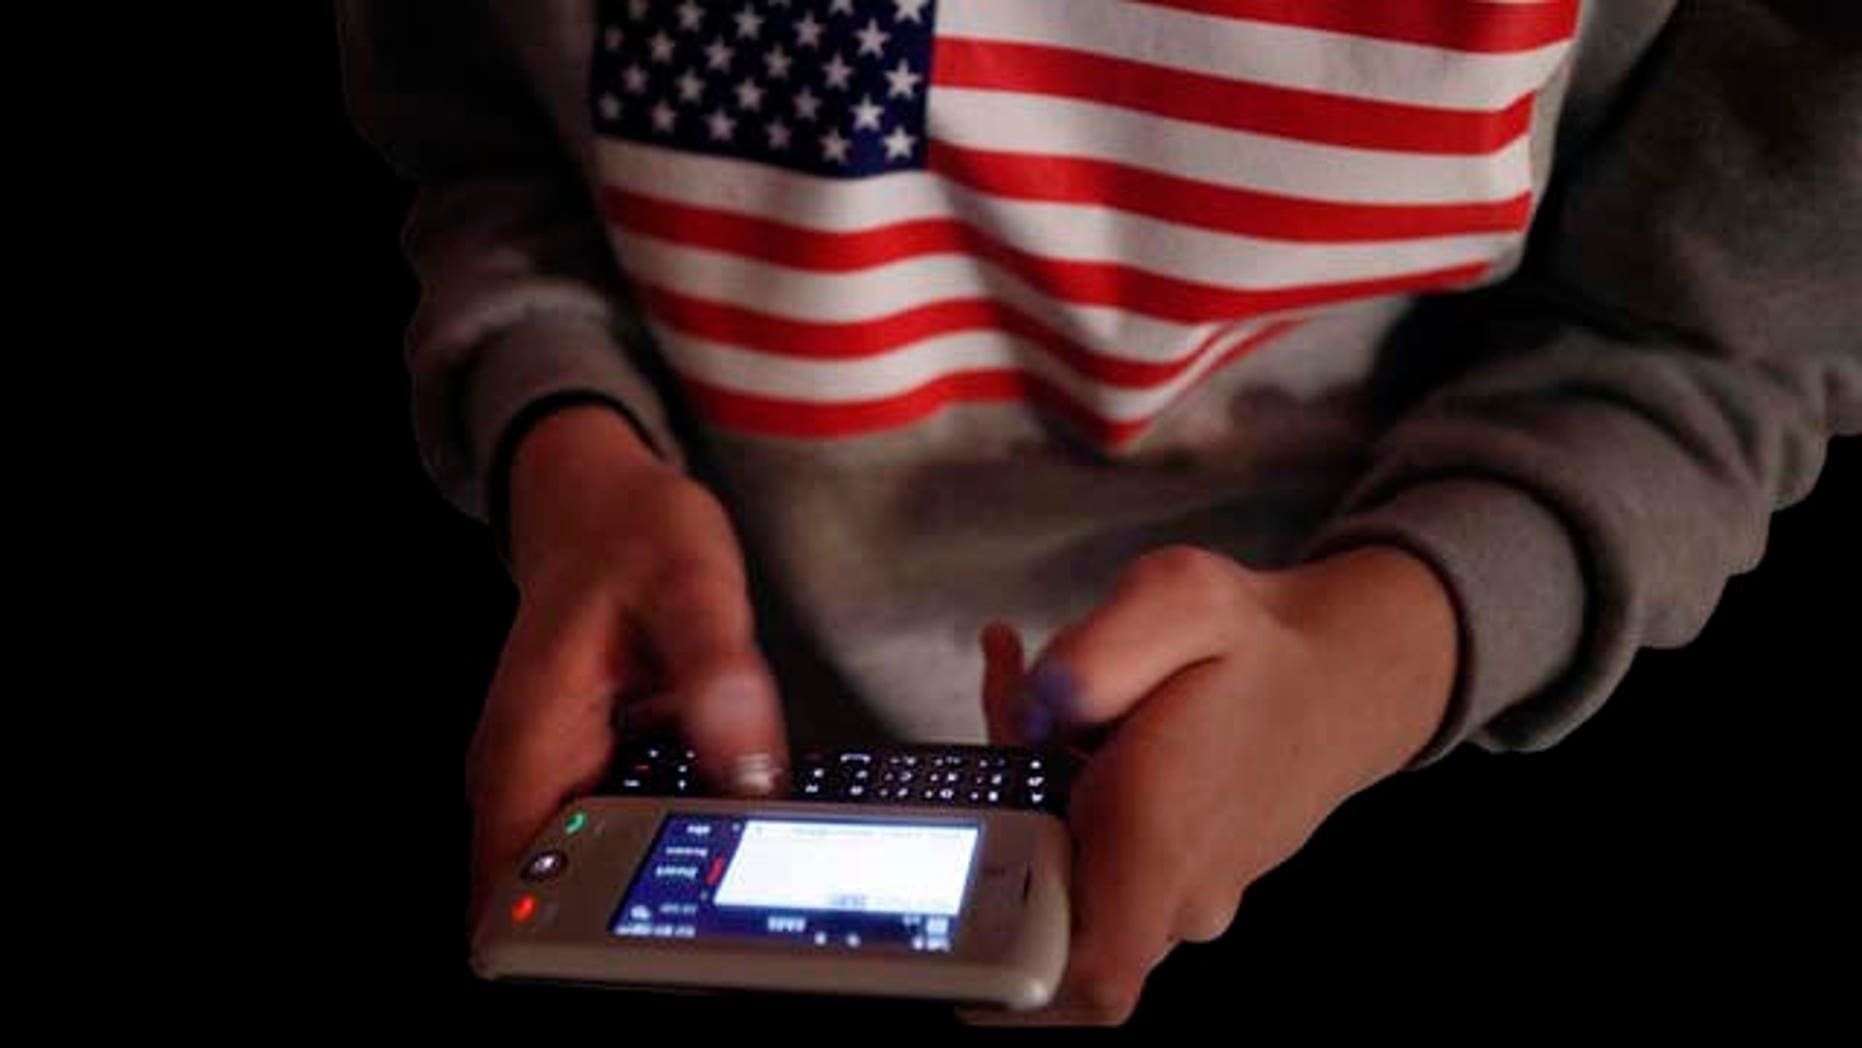 American competitor Kate Moore, 16, texts friends before the start of the LG Mobile Worldcup World  Championship in New York, Thursday, Jan. 14, 2010.  The Koreans won the top prize in the competition, which tested the speed and accuracy of the participants typing messages on mobile phones.  (AP Photo/Seth Wenig)